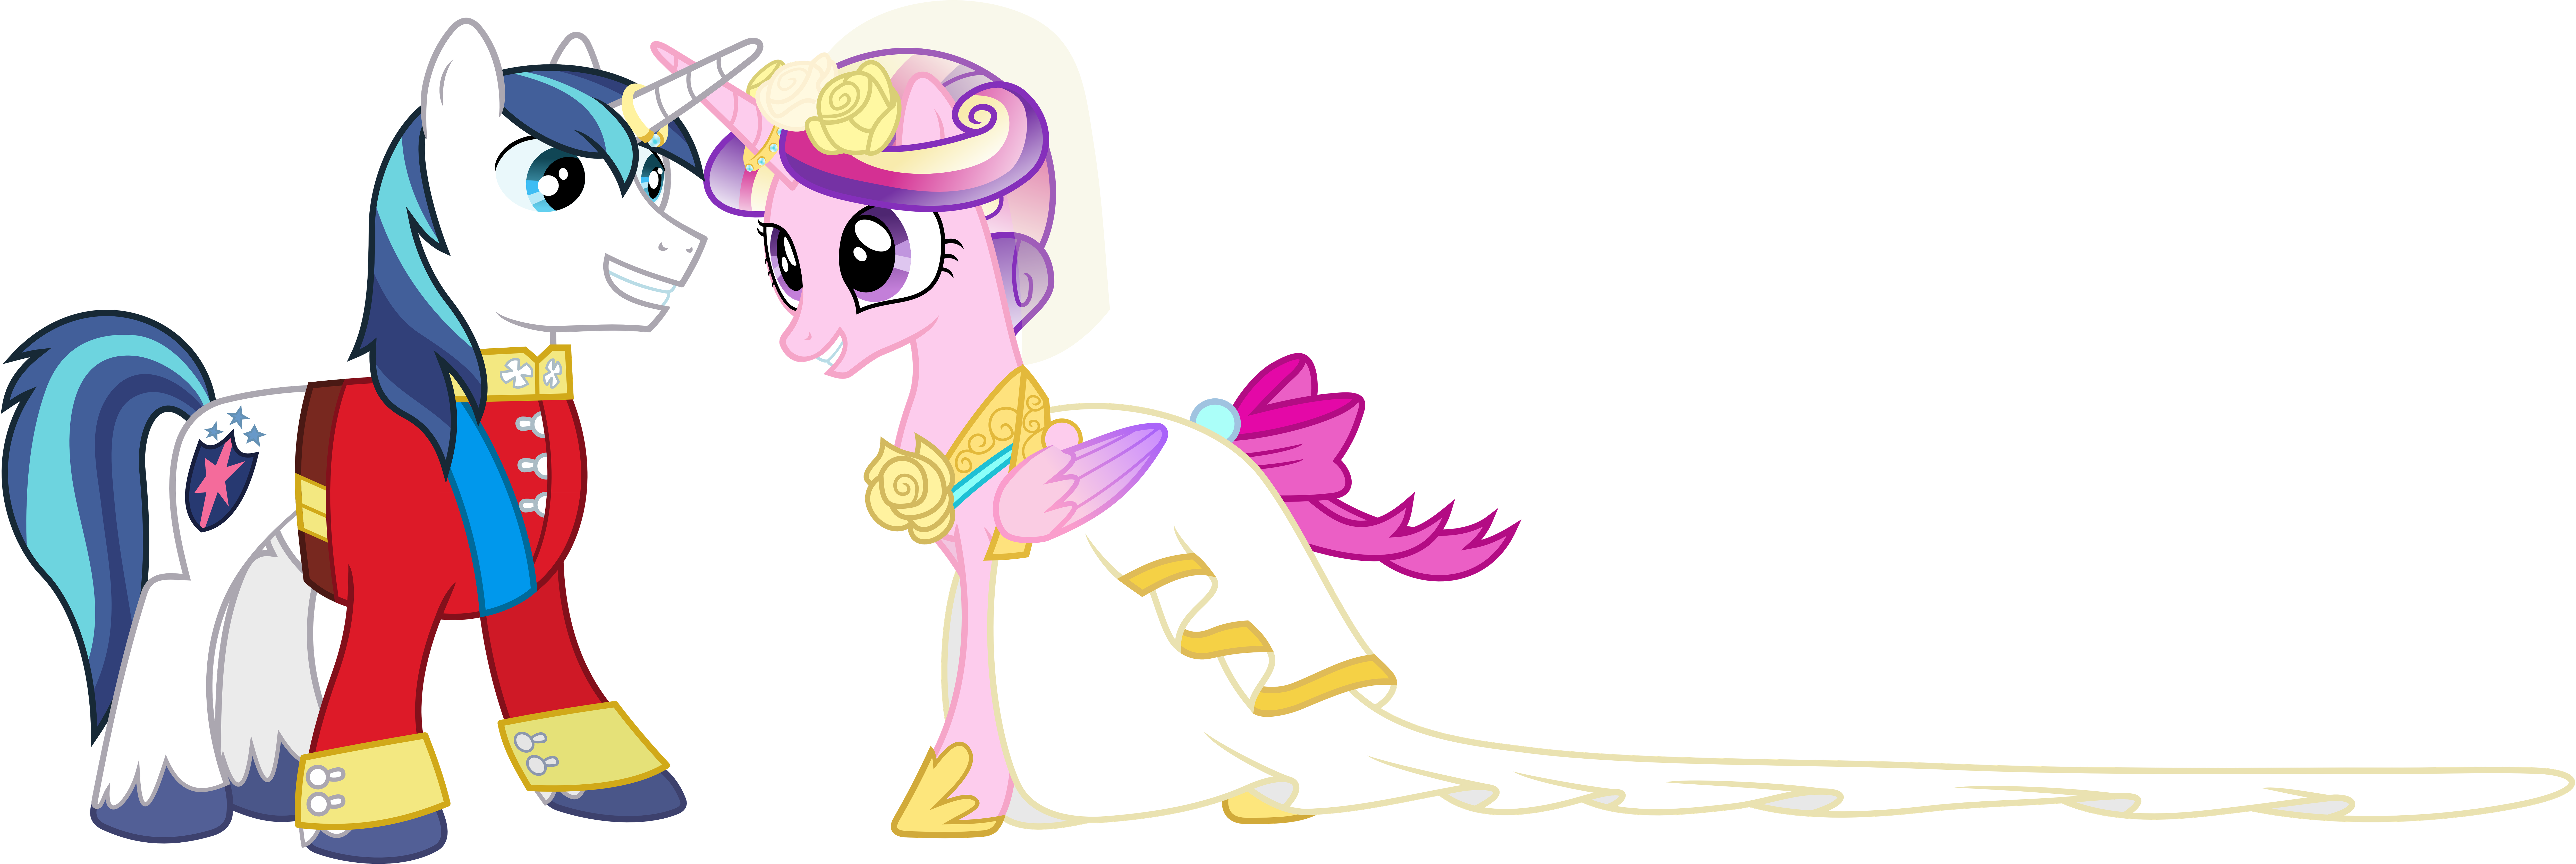 Princess cadance and shining armour dancing 2 by 90sigma on